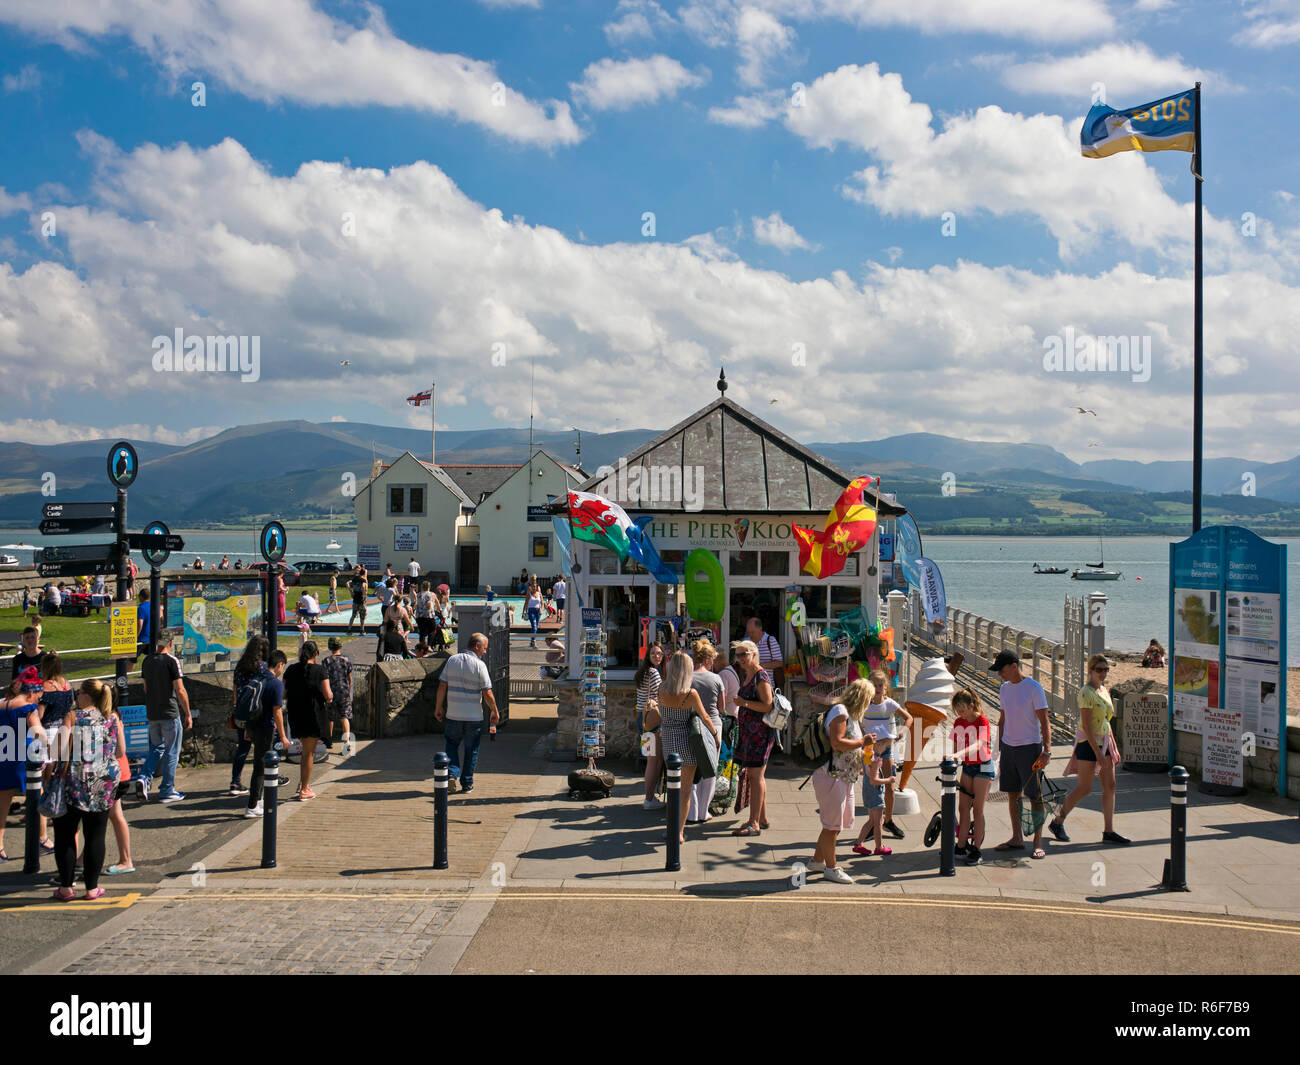 Horizontal view of the pier in Beaumaris on Anglesey. - Stock Photo